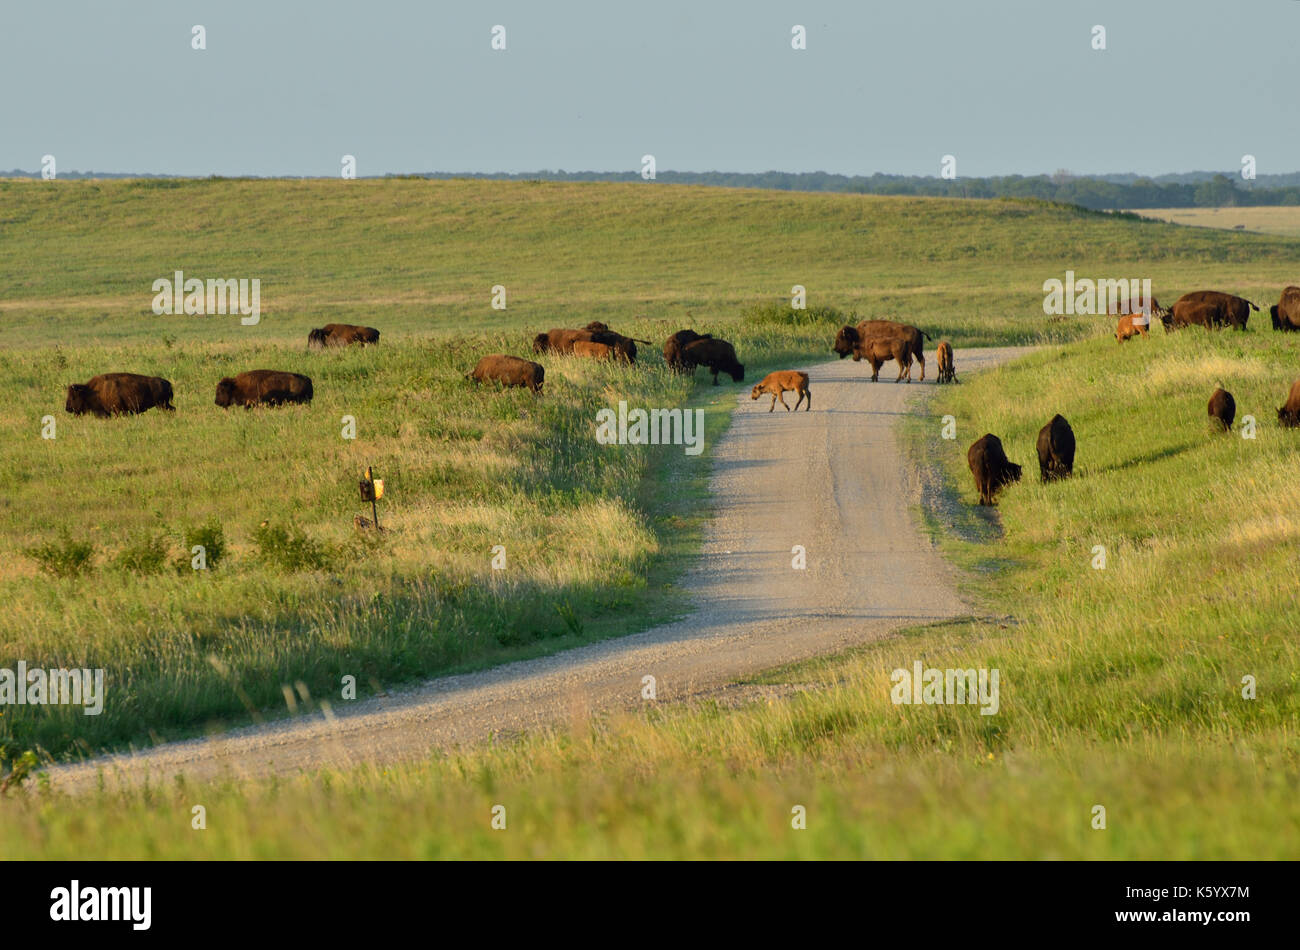 American Bison herd crossing a gravel road in Oklahoma's Tallgrass Prairie Preserve. Stock Photo